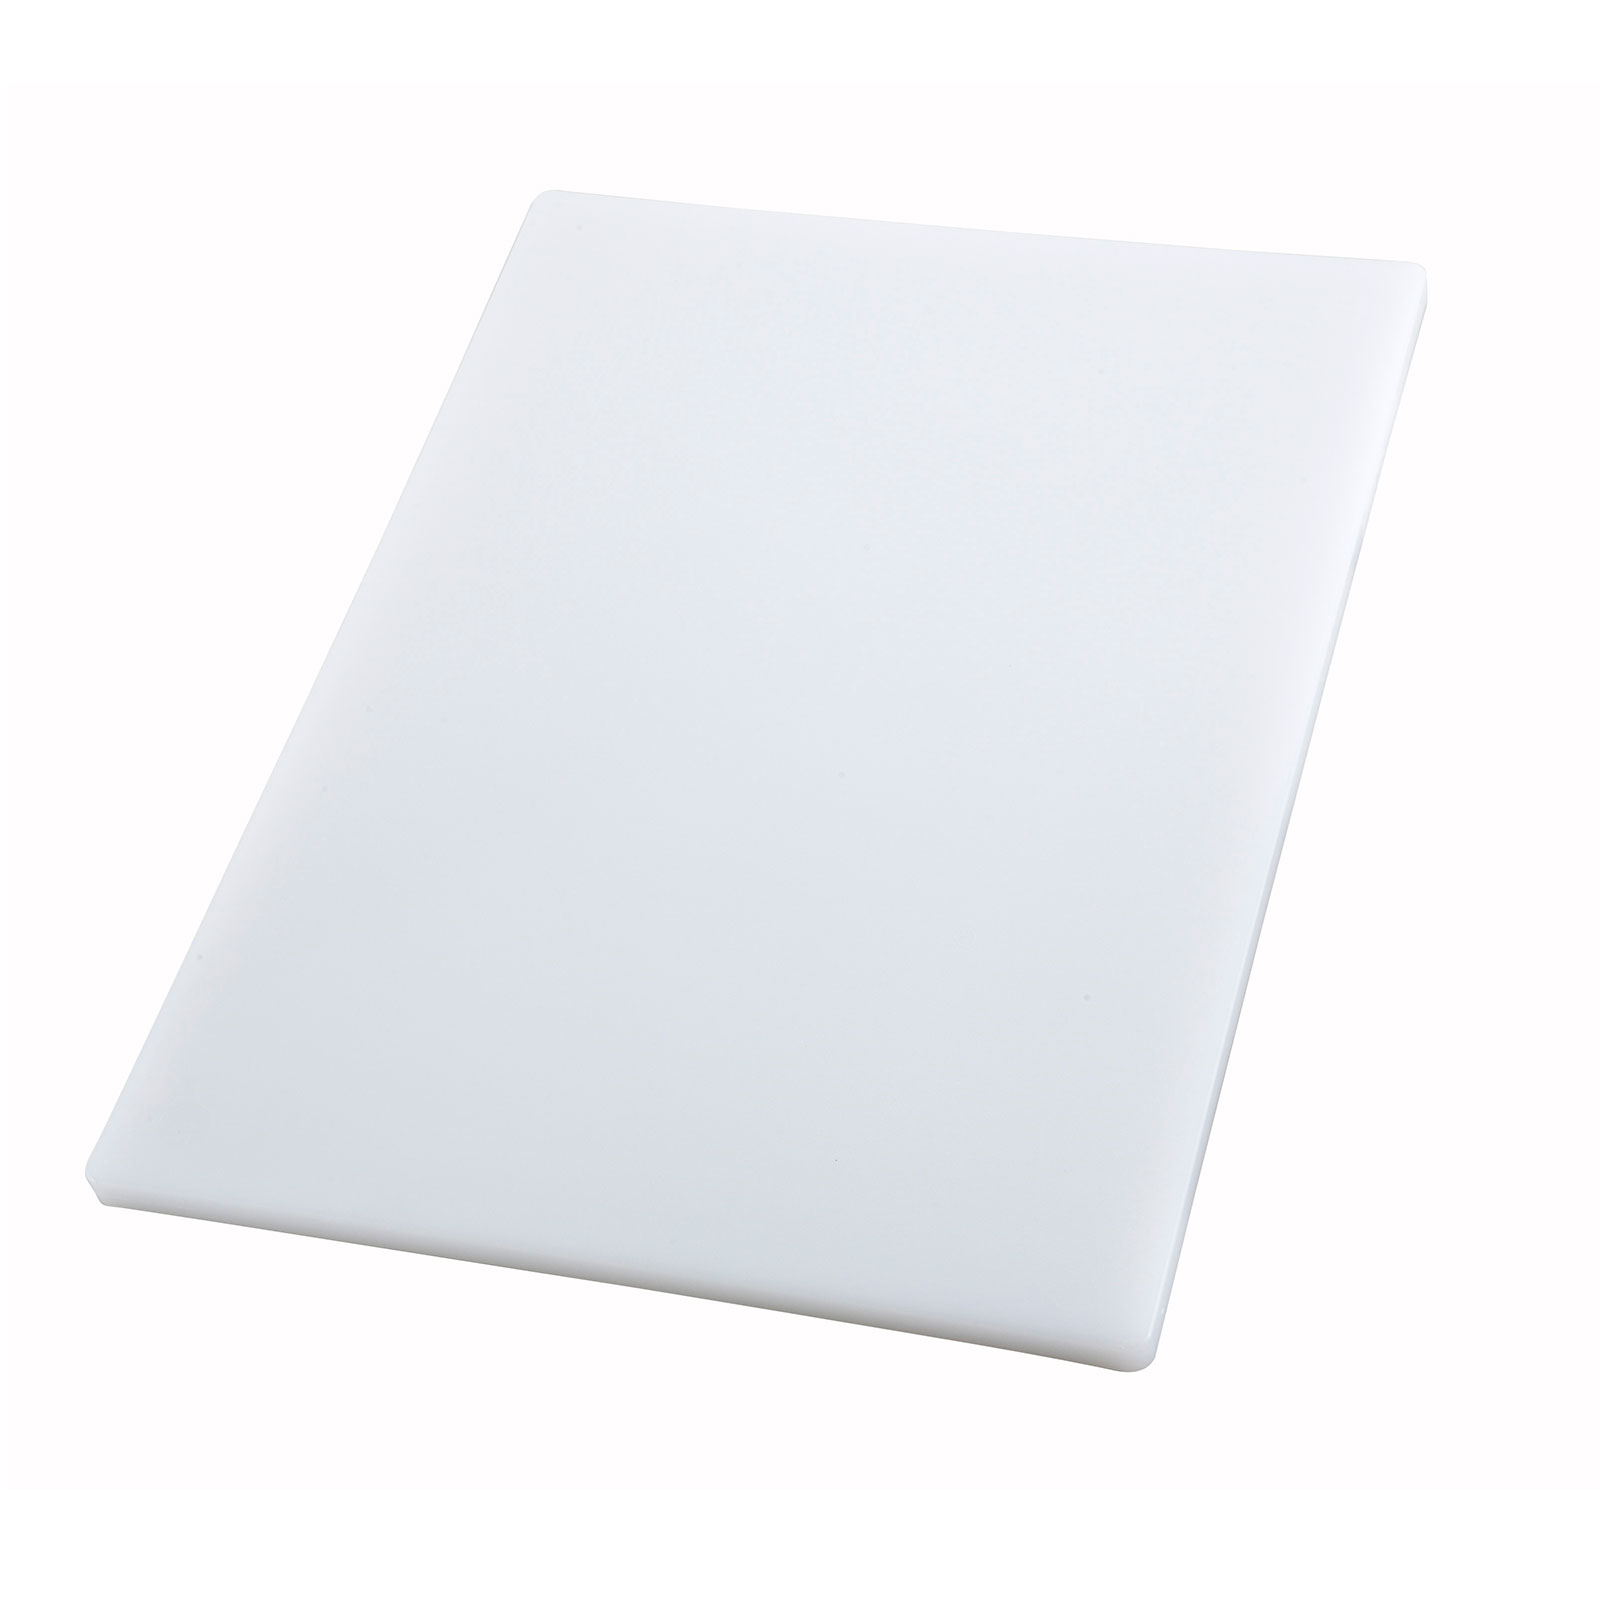 Winco CBH-1520 cutting board, plastic